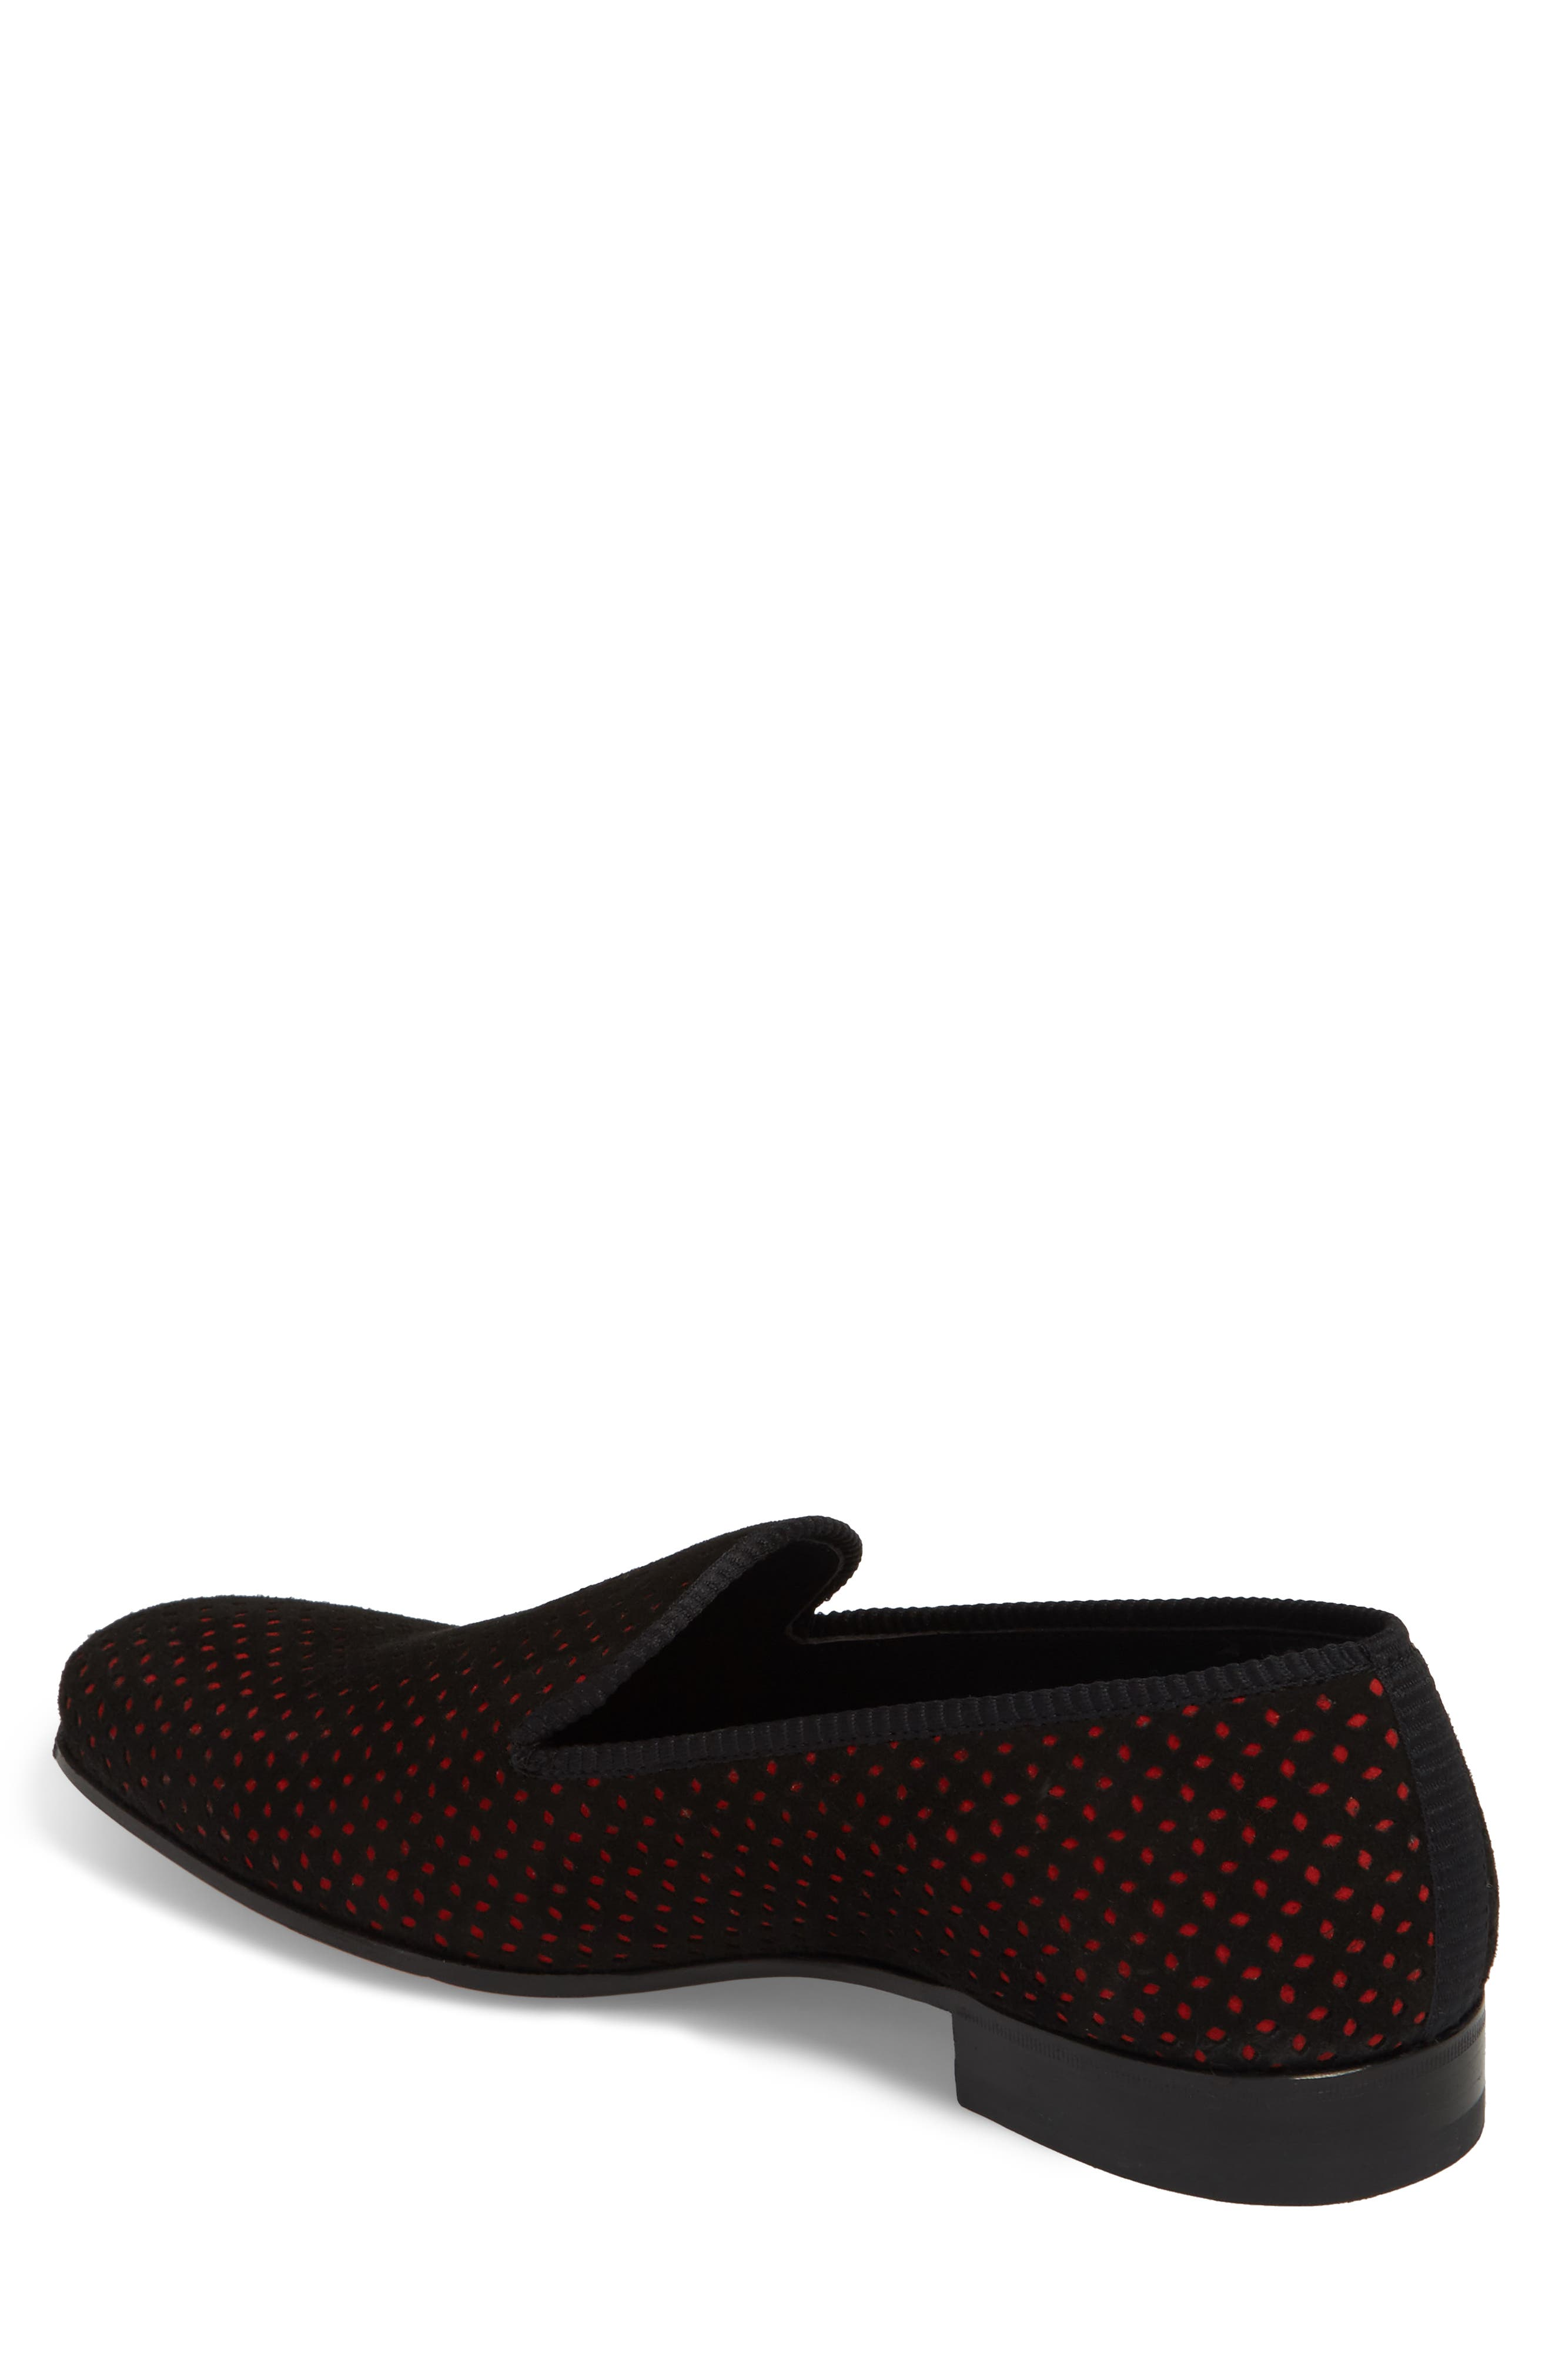 Cibeles Venetian Loafer,                             Alternate thumbnail 2, color,                             BLACK/ RED SUEDE